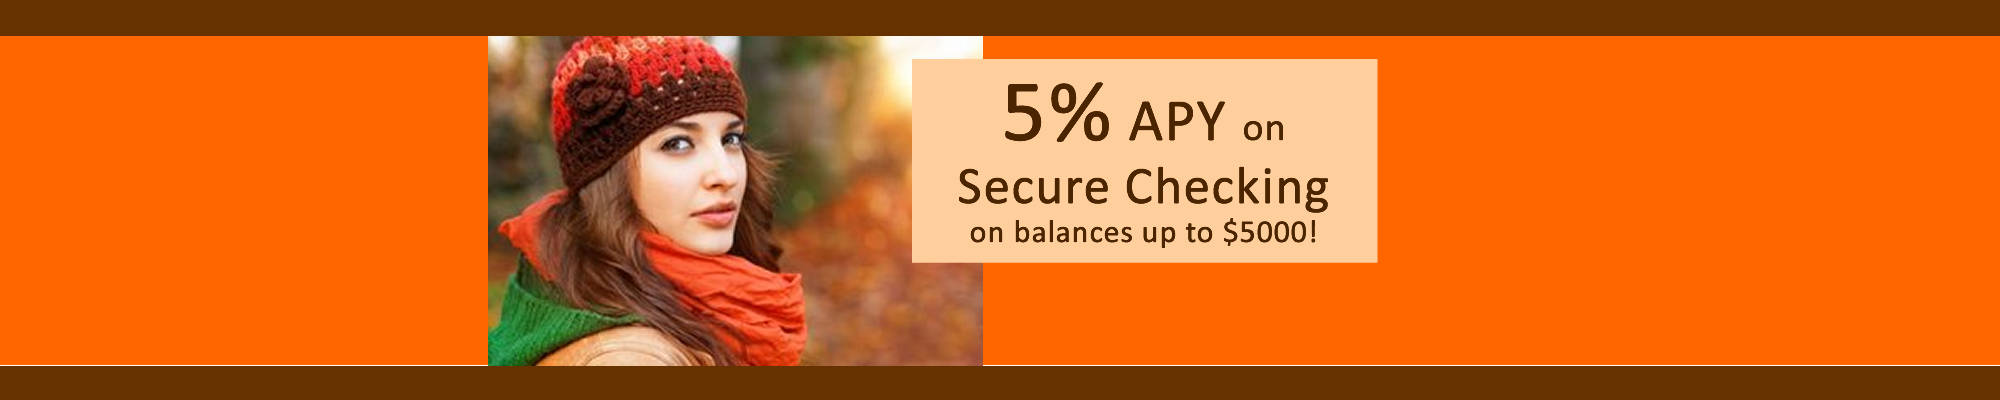 5% Secure Checking